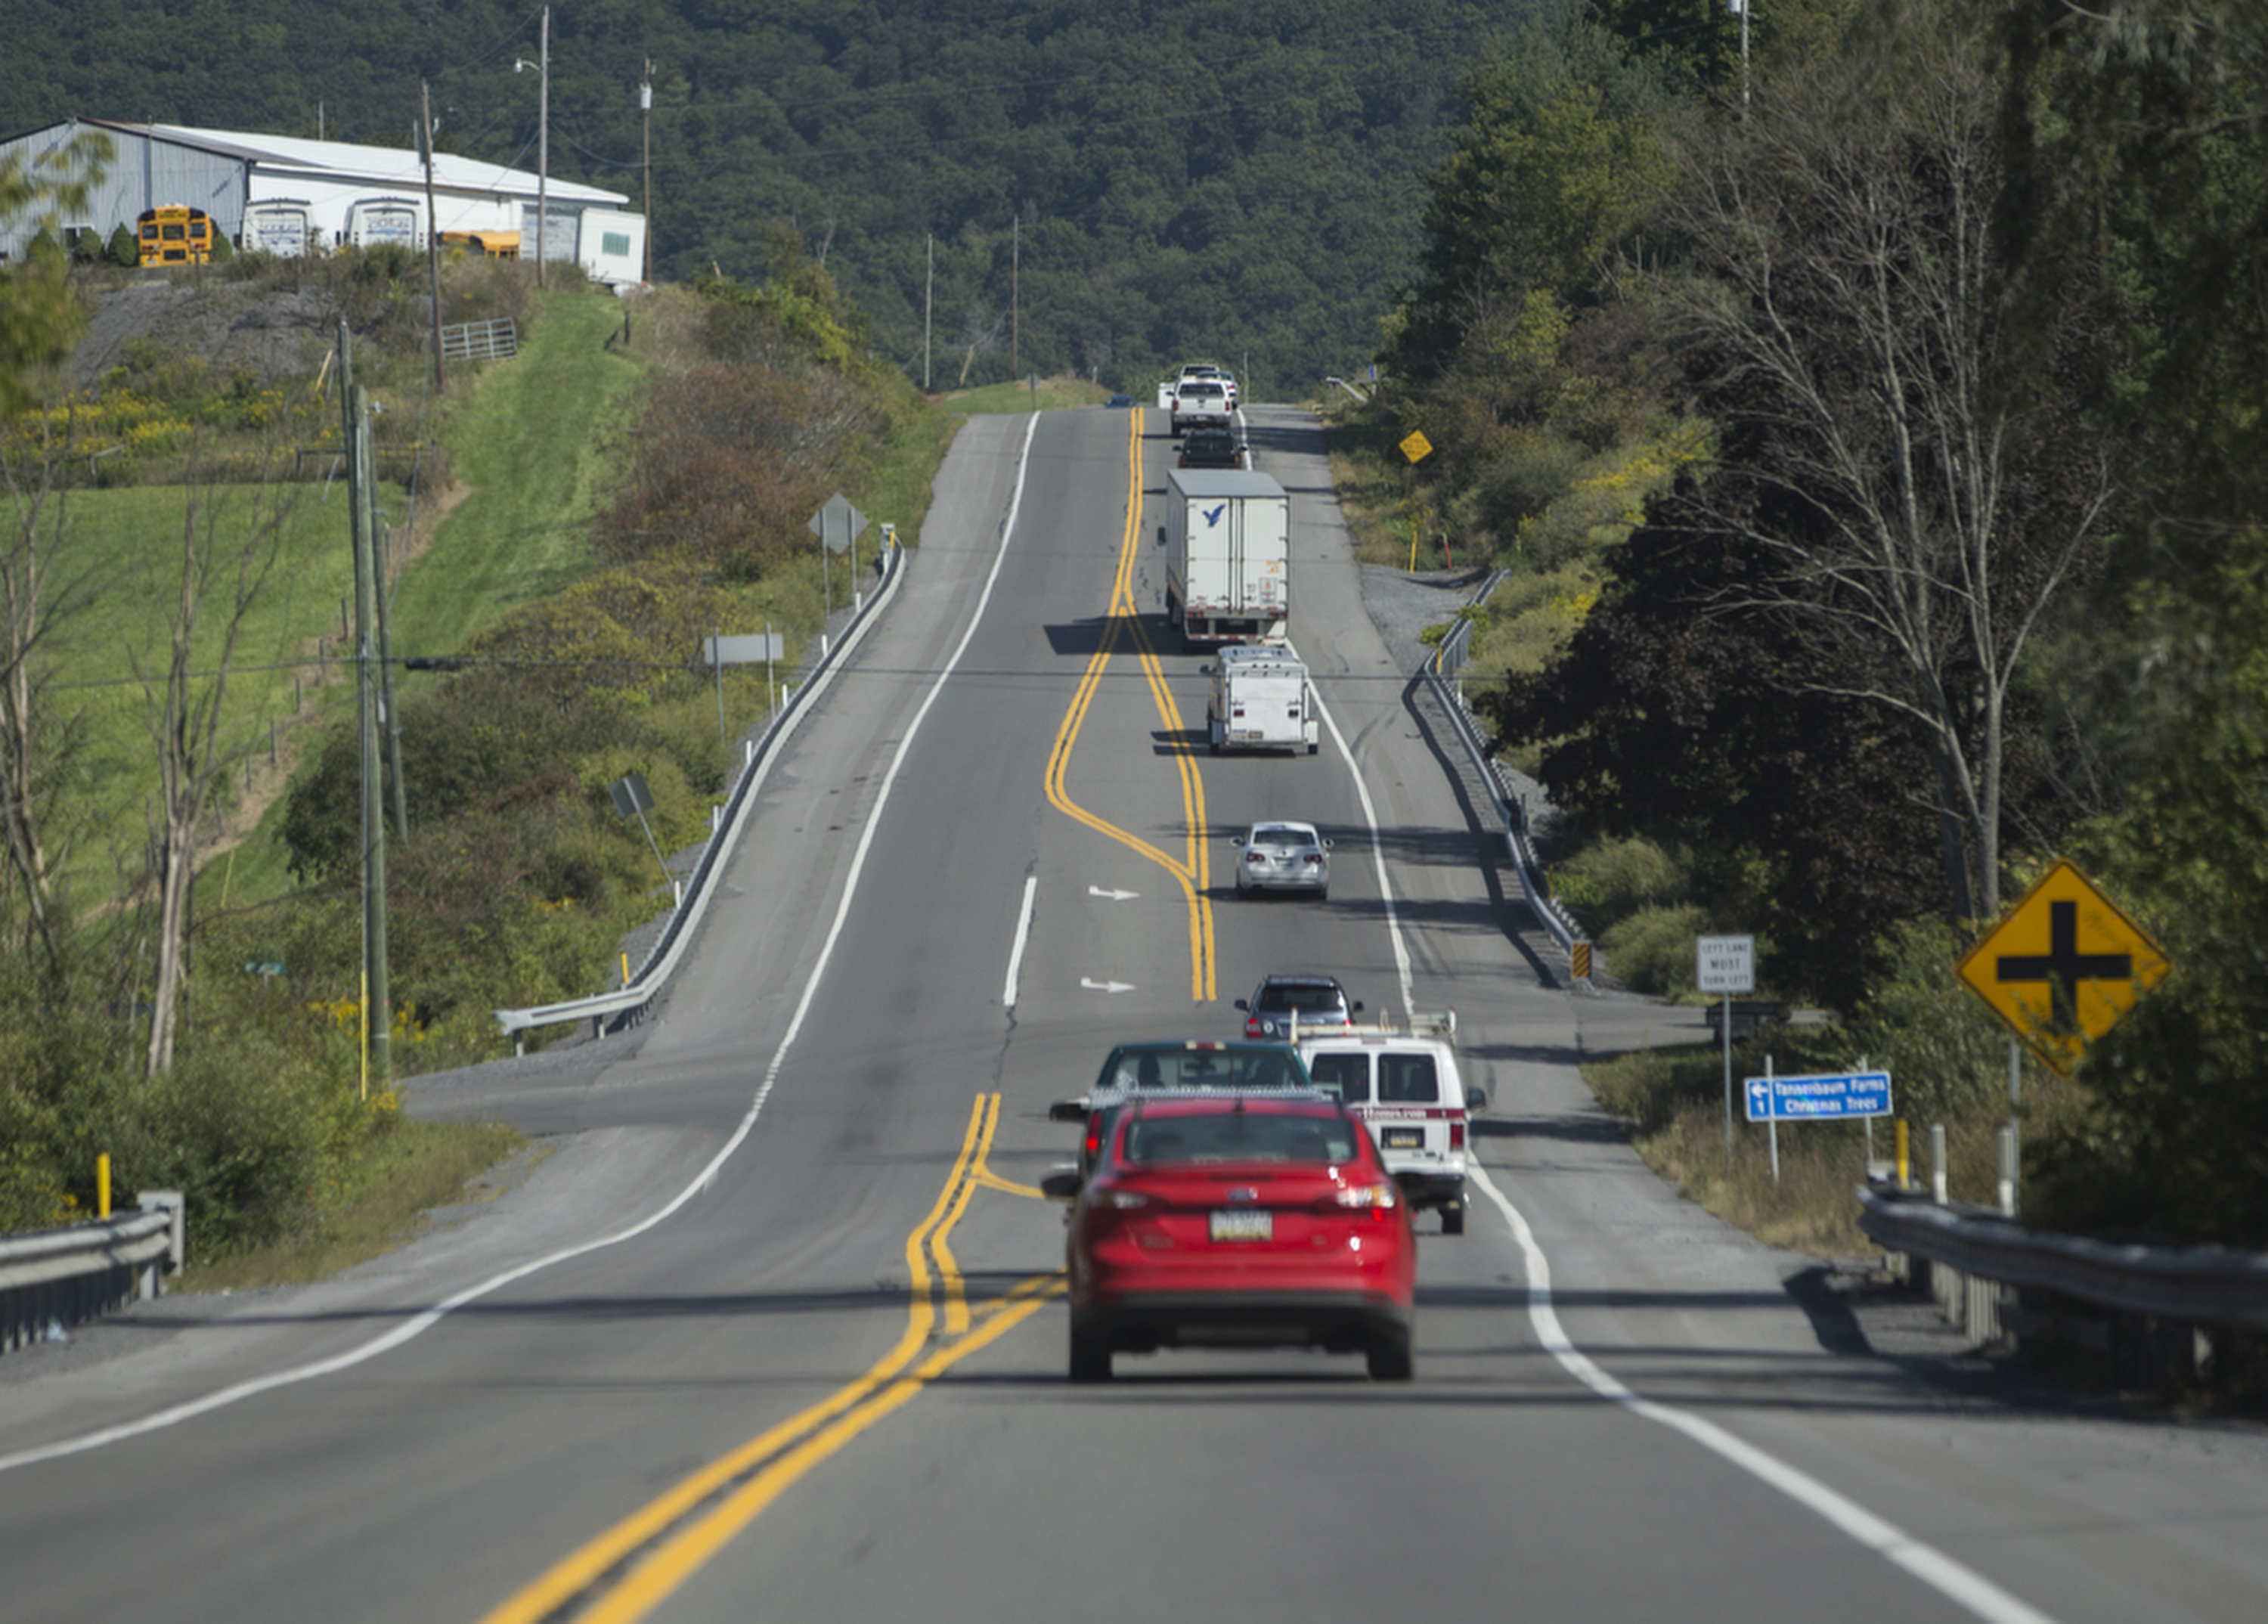 'Missing Link' no more: $670 million plan would widen stretch of Route 322